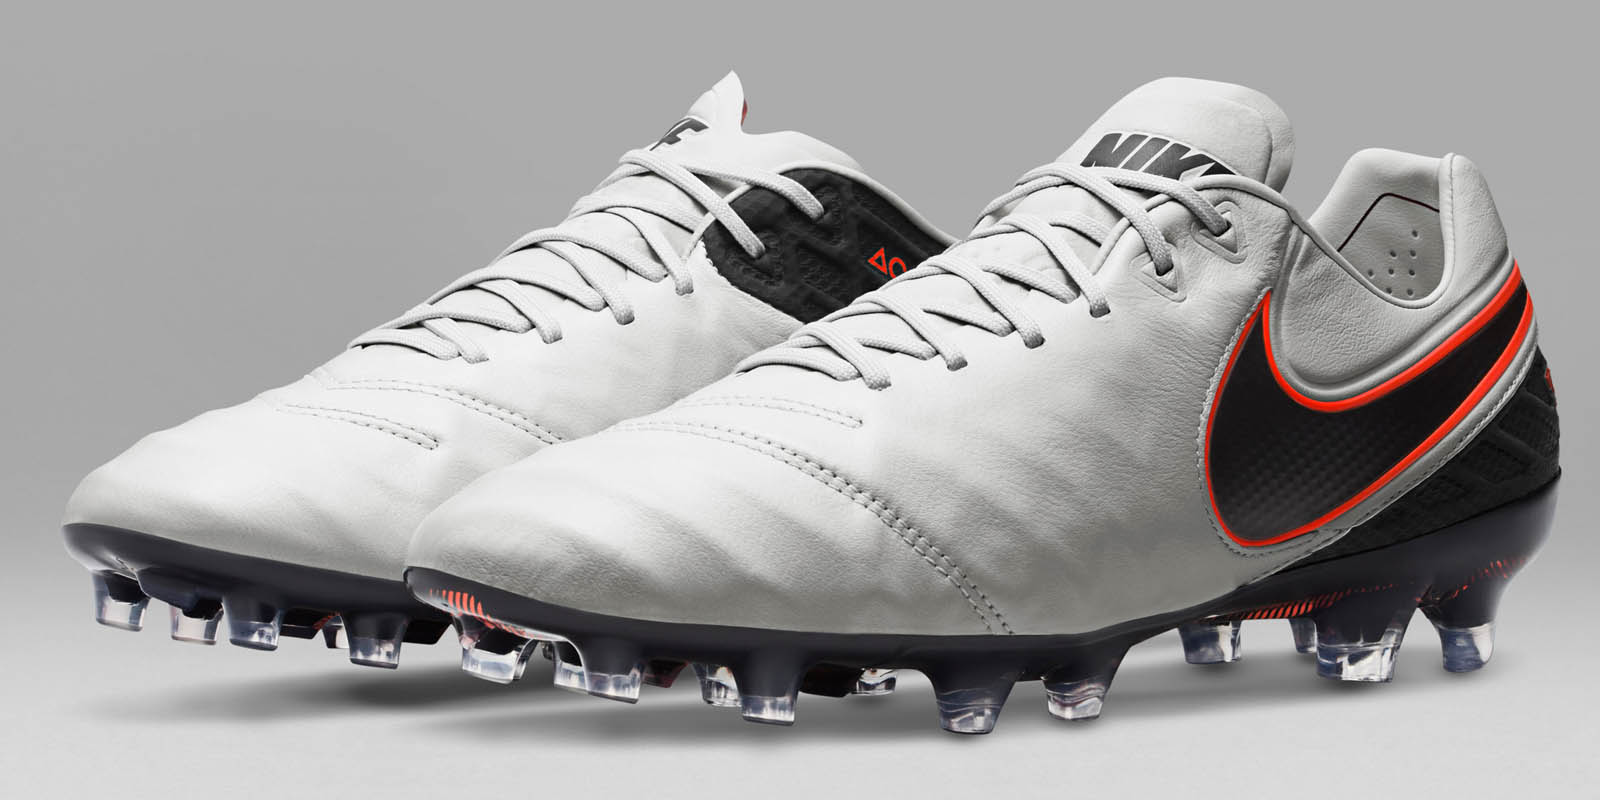 Next-Gen Nike Tiempo Legend 6 2016 Boots Released